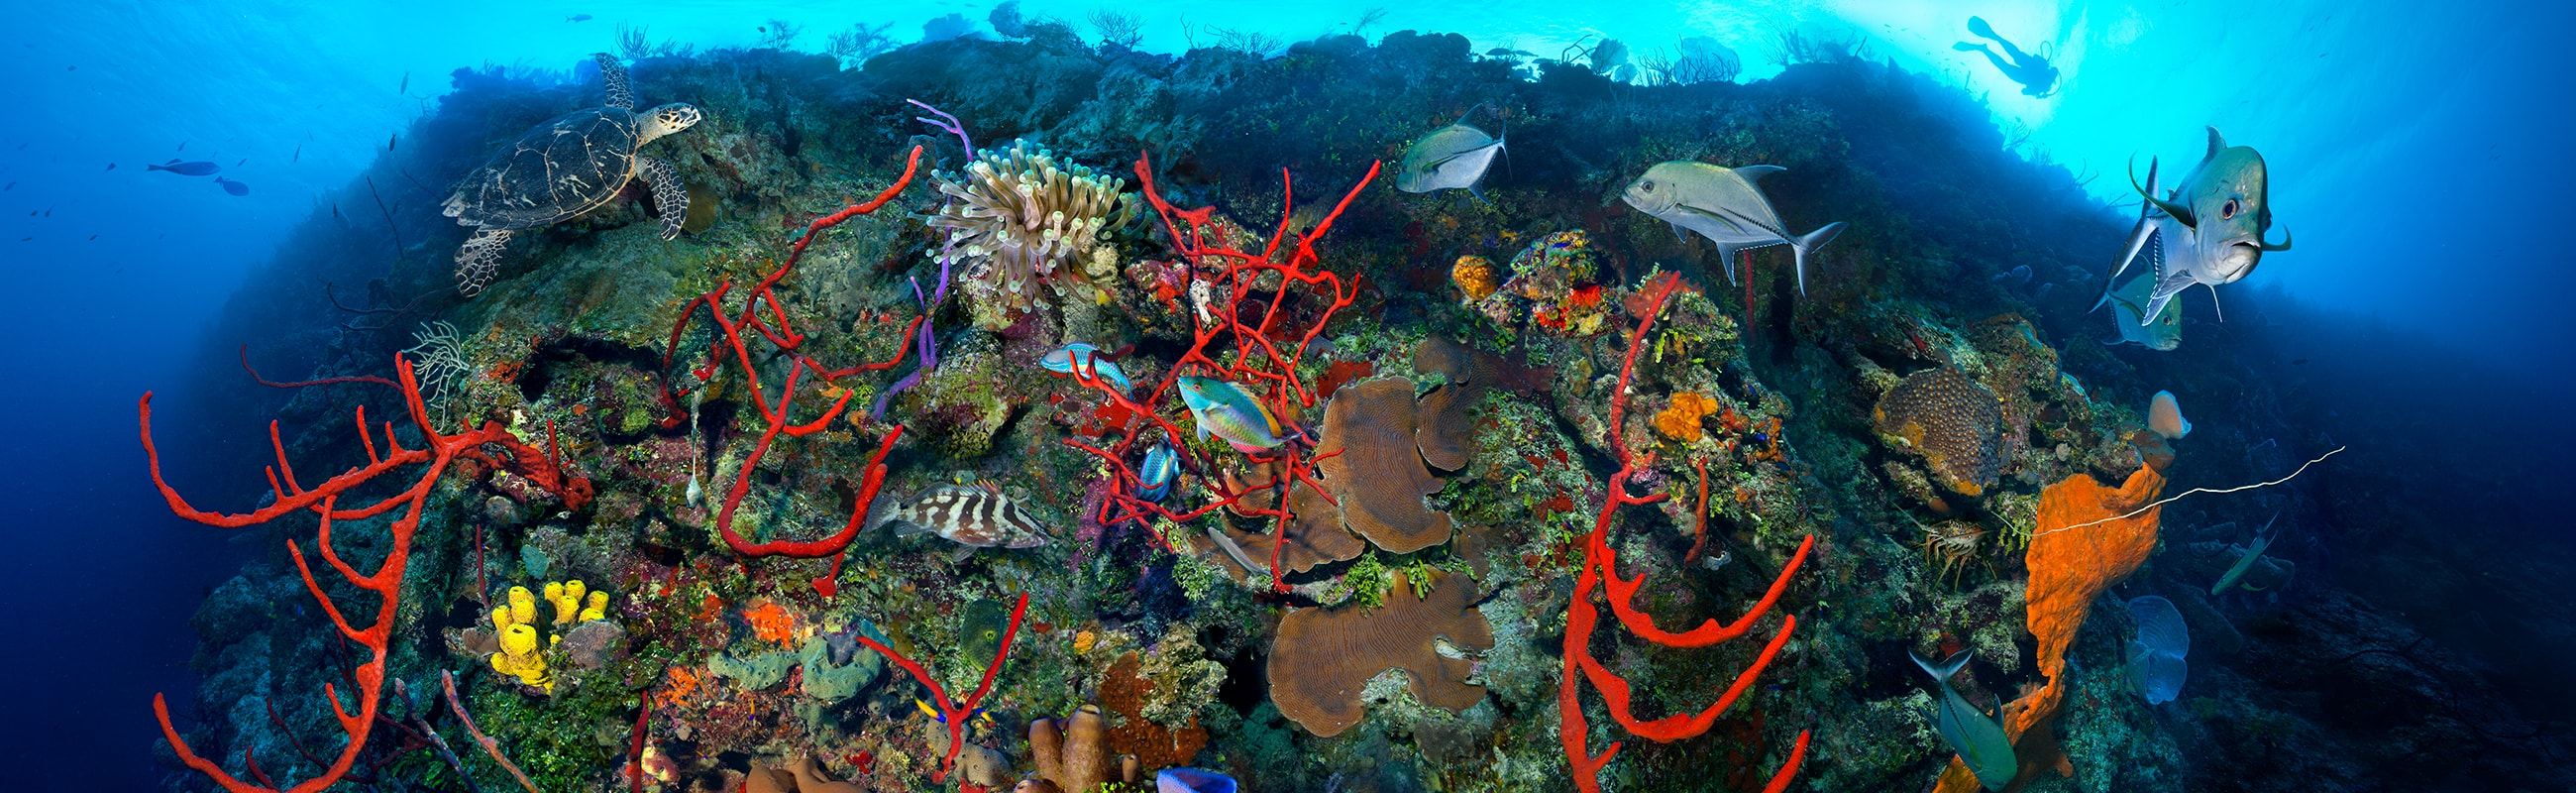 Discover abundant, colorful marine life along tops of the walls and shallow sites